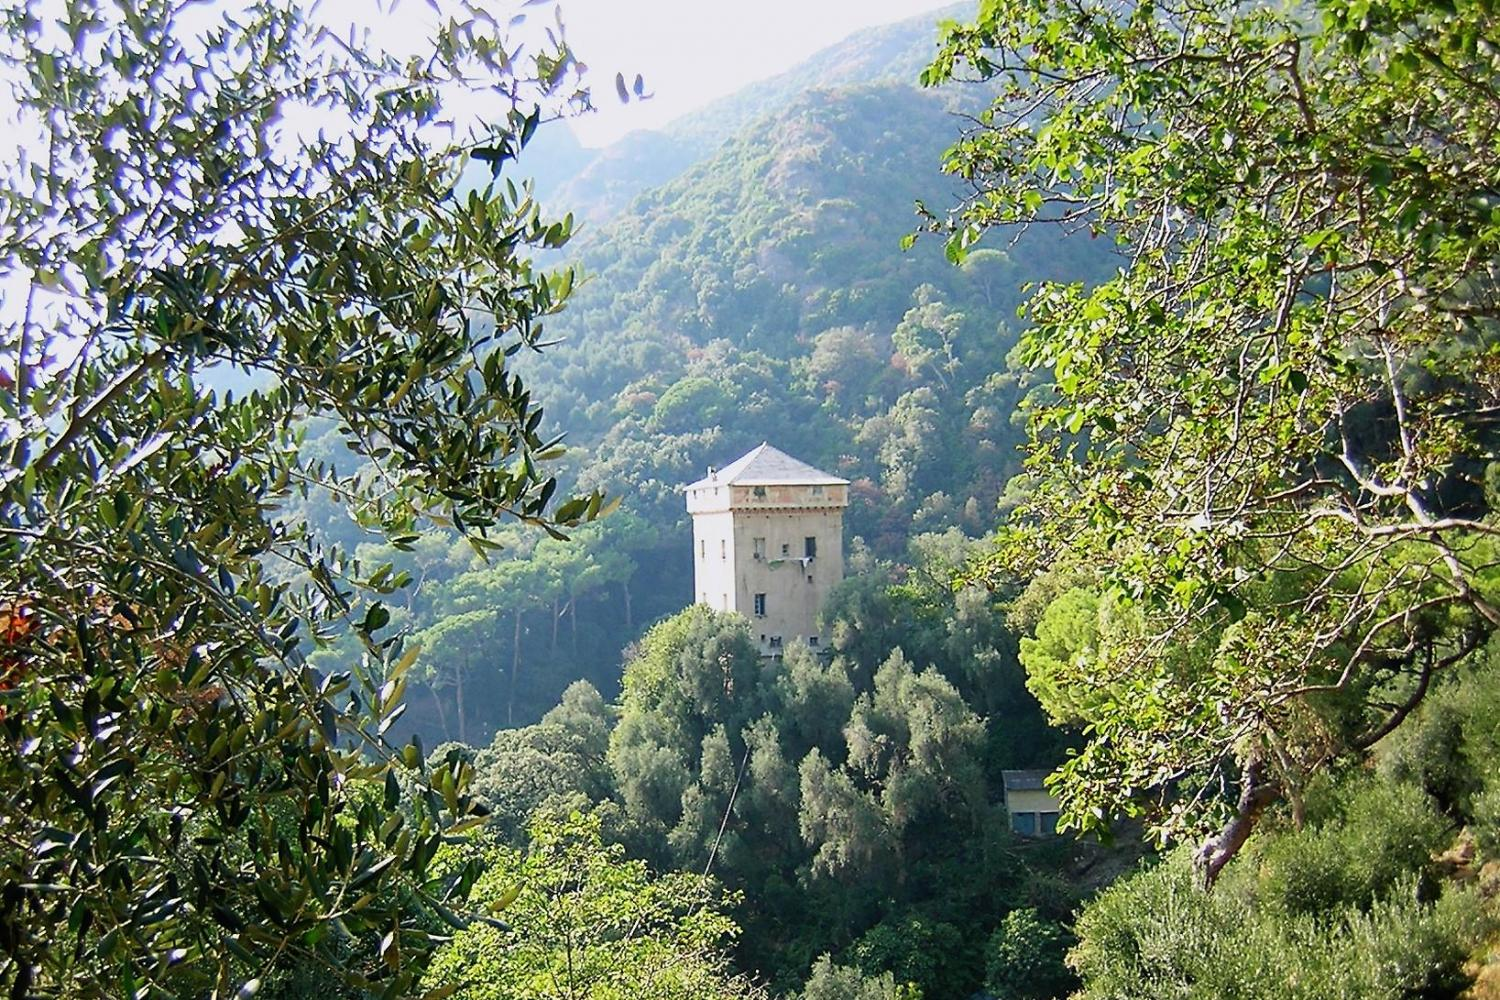 Abbey of San Fruttuoso through olive trees...what a sight!